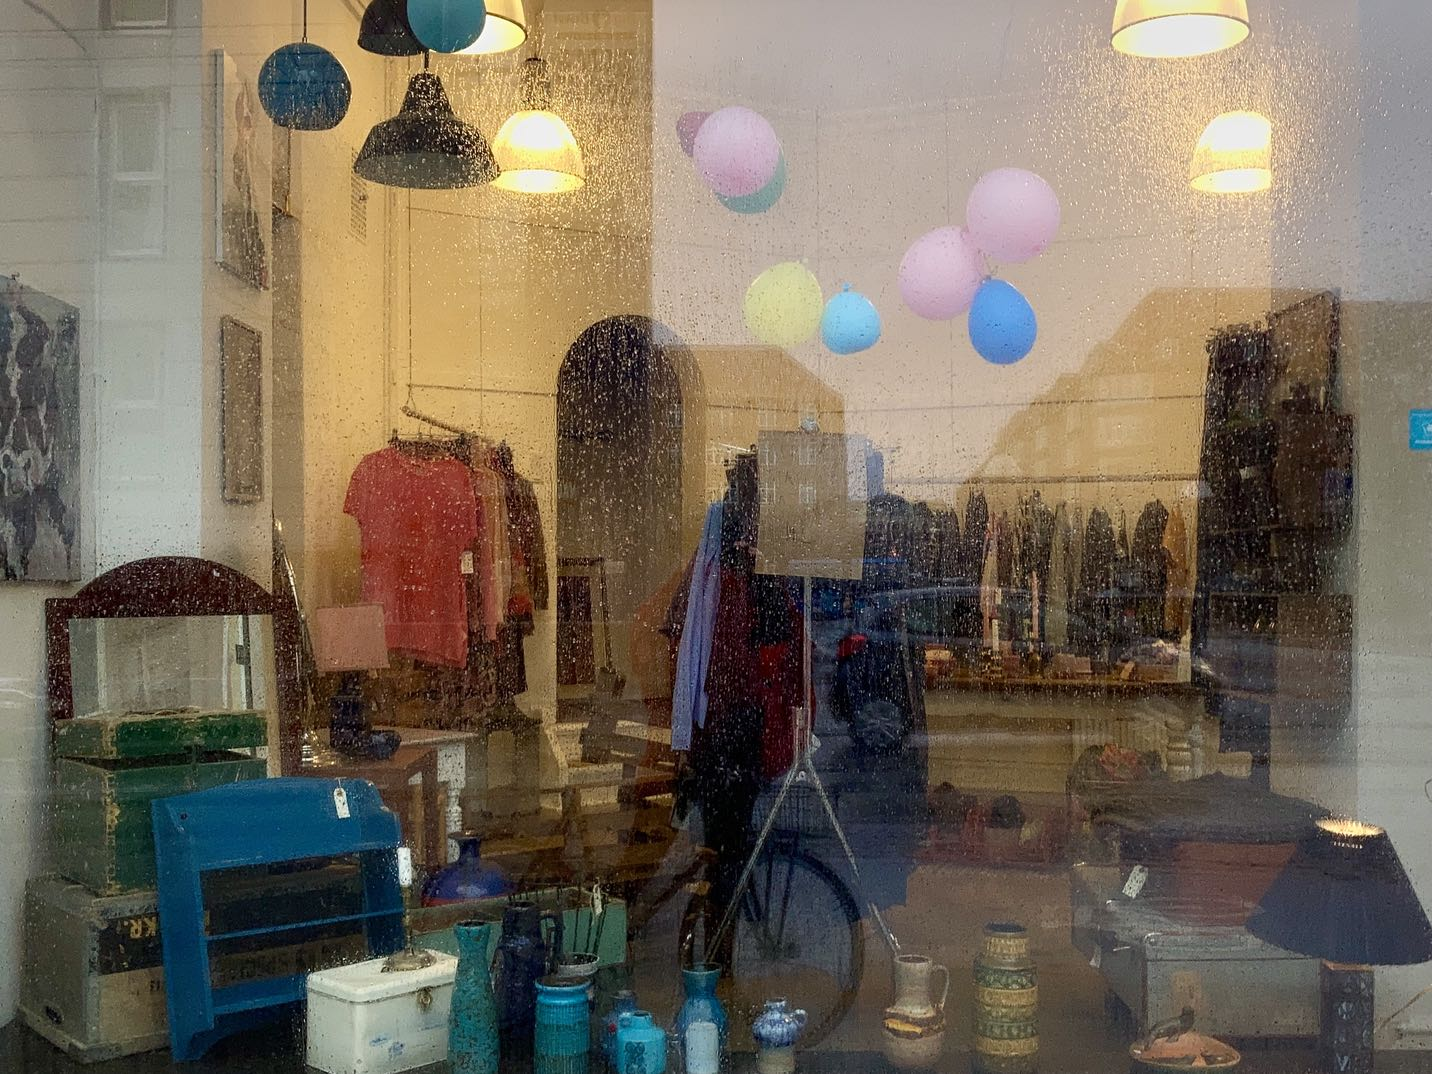 The rain-splashed window of a second hand store.